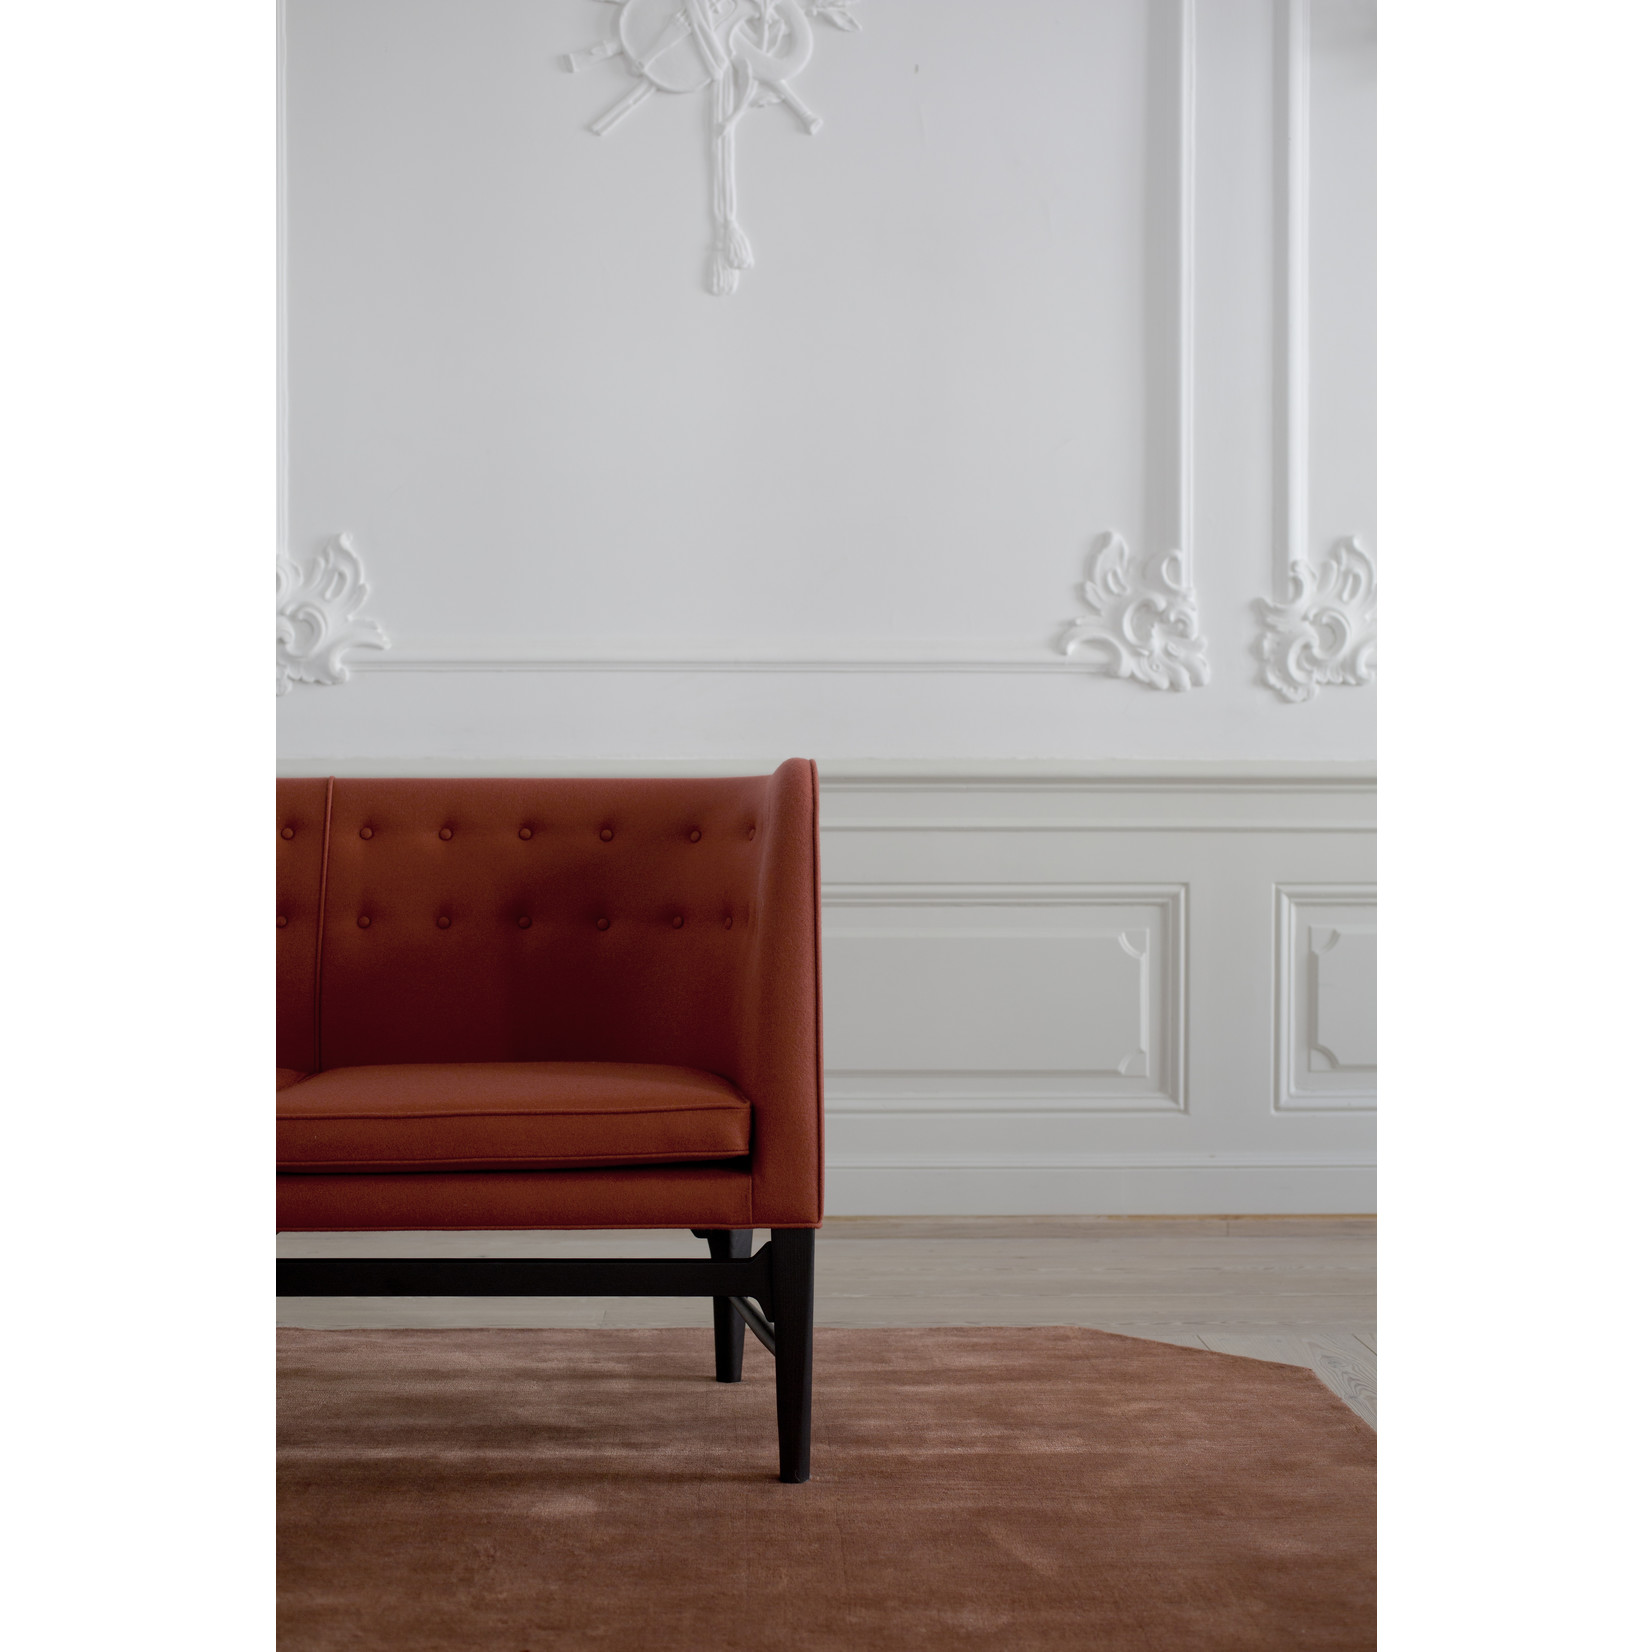 &Tradition The Moor AP8 | Rouge chiné 300x300cm